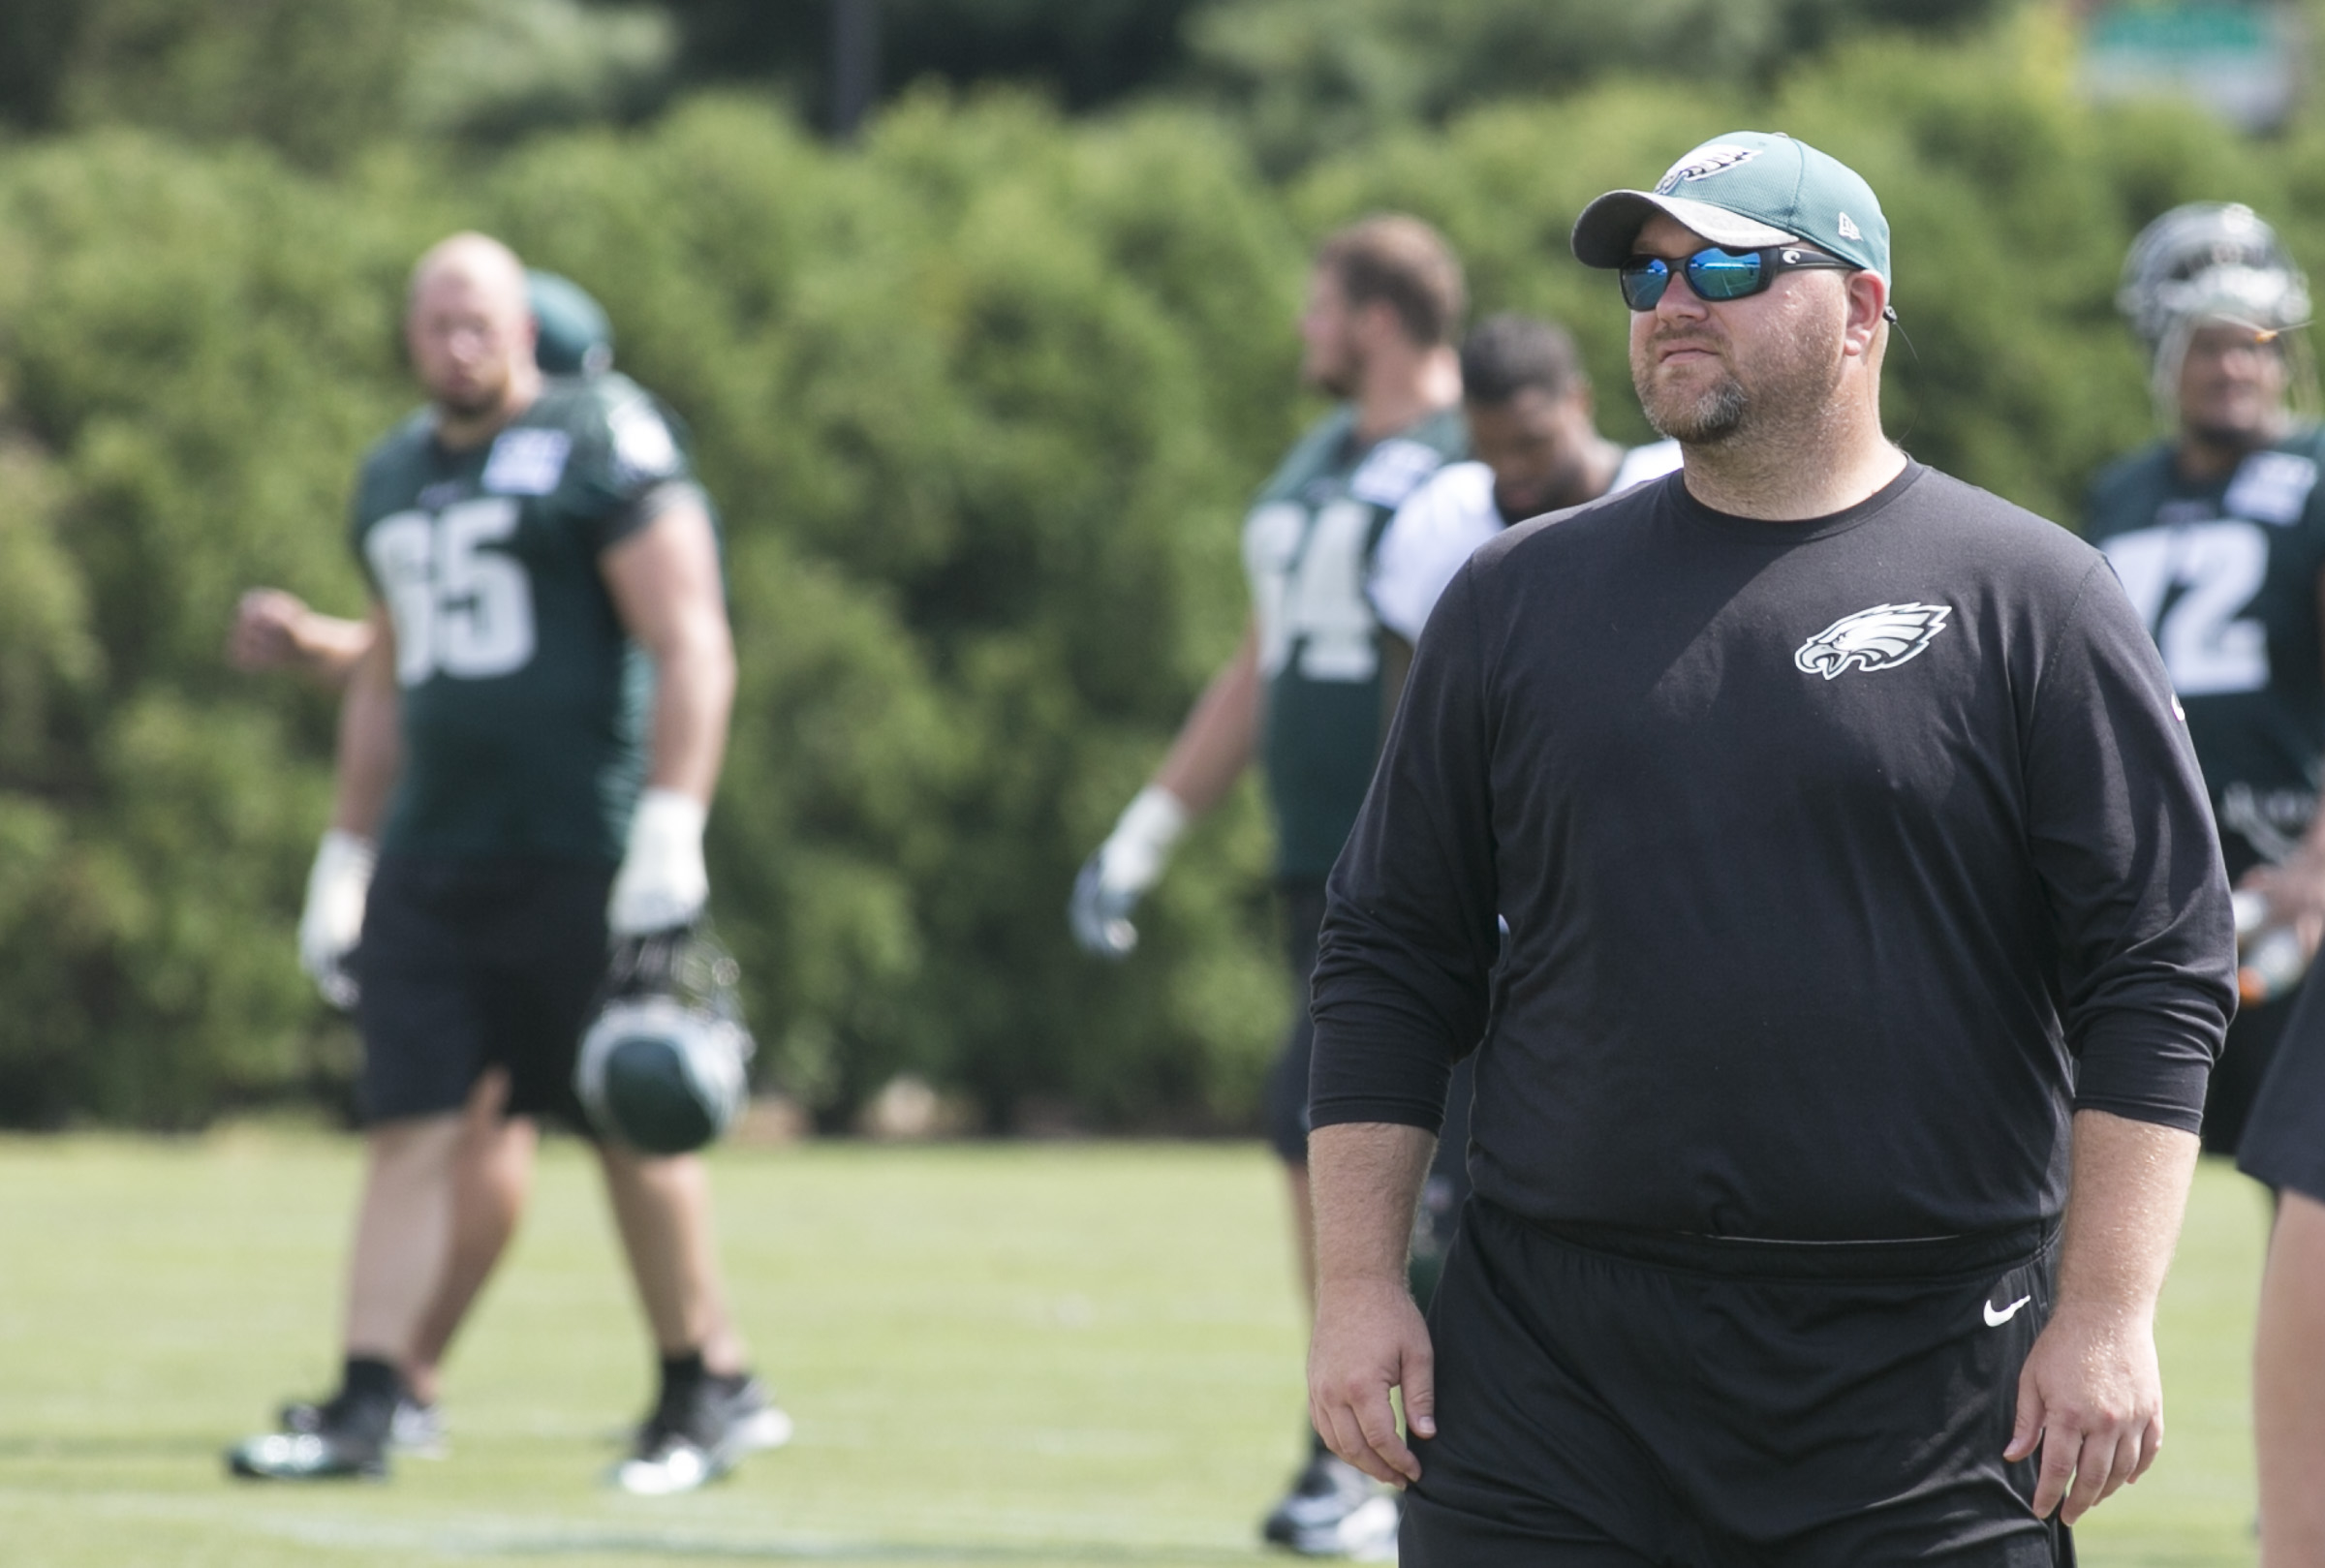 """Joe Douglas still looks like the offensive lineman he was during his college years at Richmond, a trait that can leave some surprised. """"People underestimate how smart Joe is,"""" one draft analyst said."""